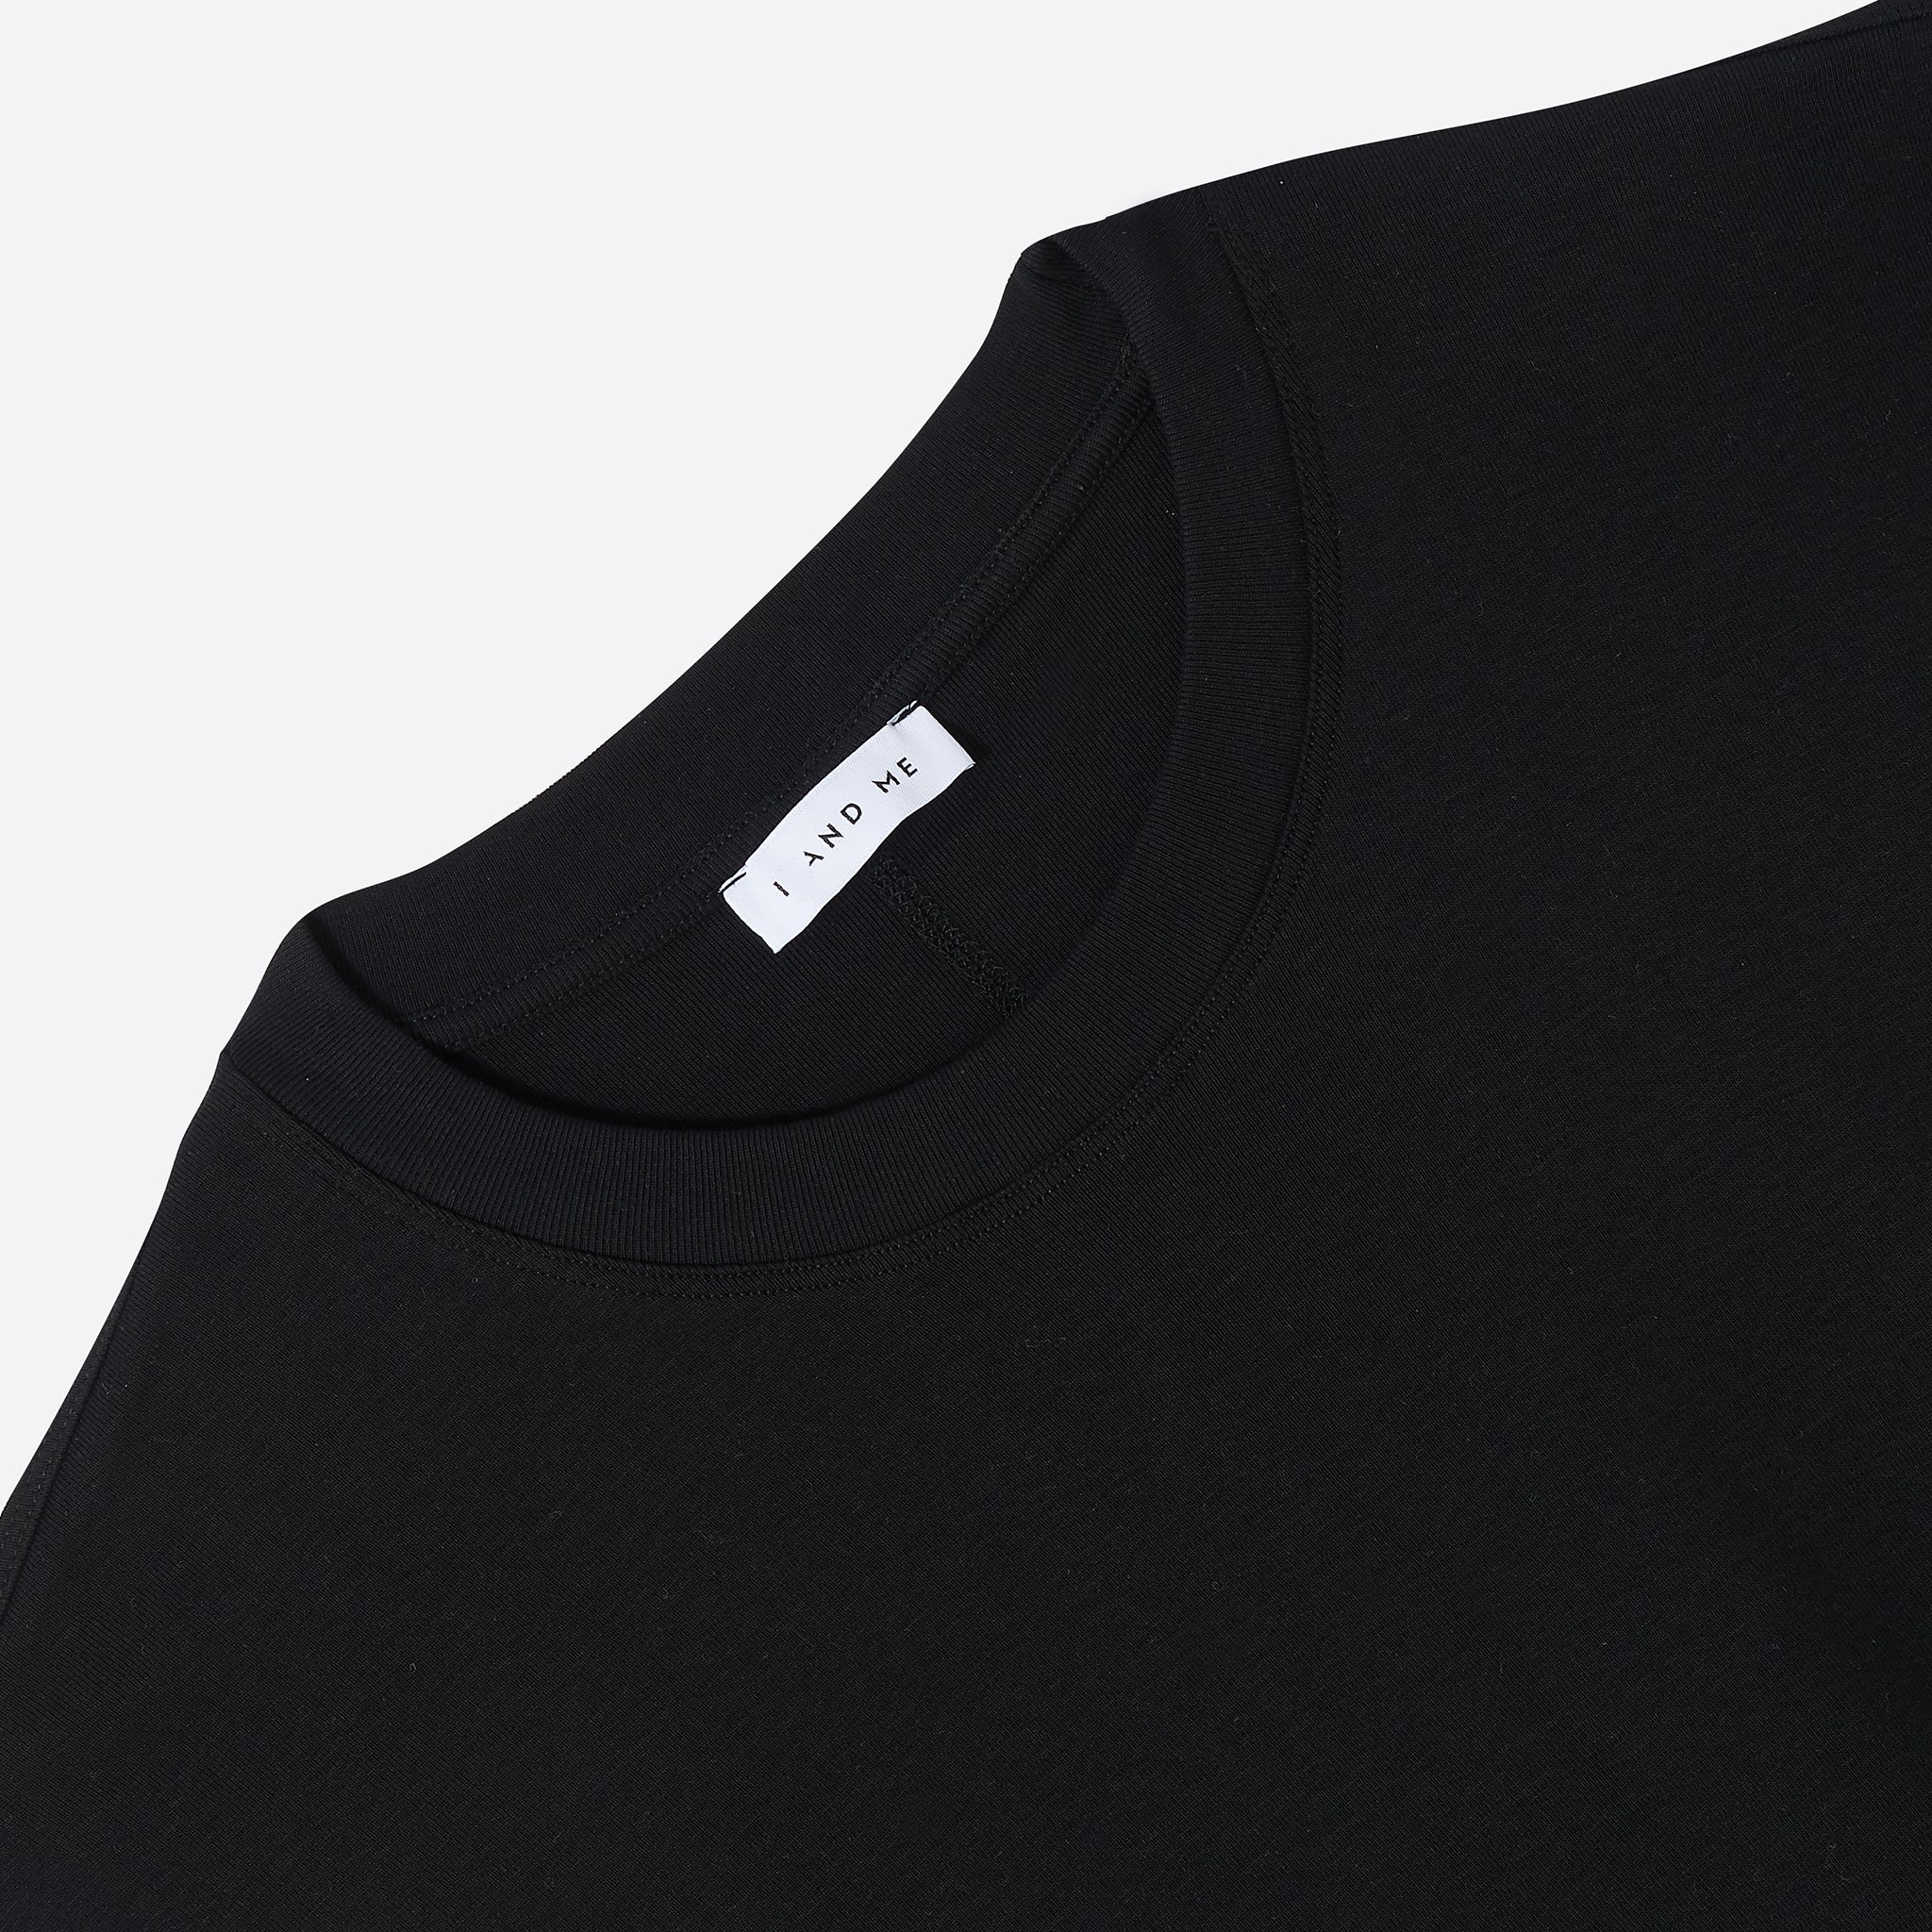 I AND ME Essential T in Black